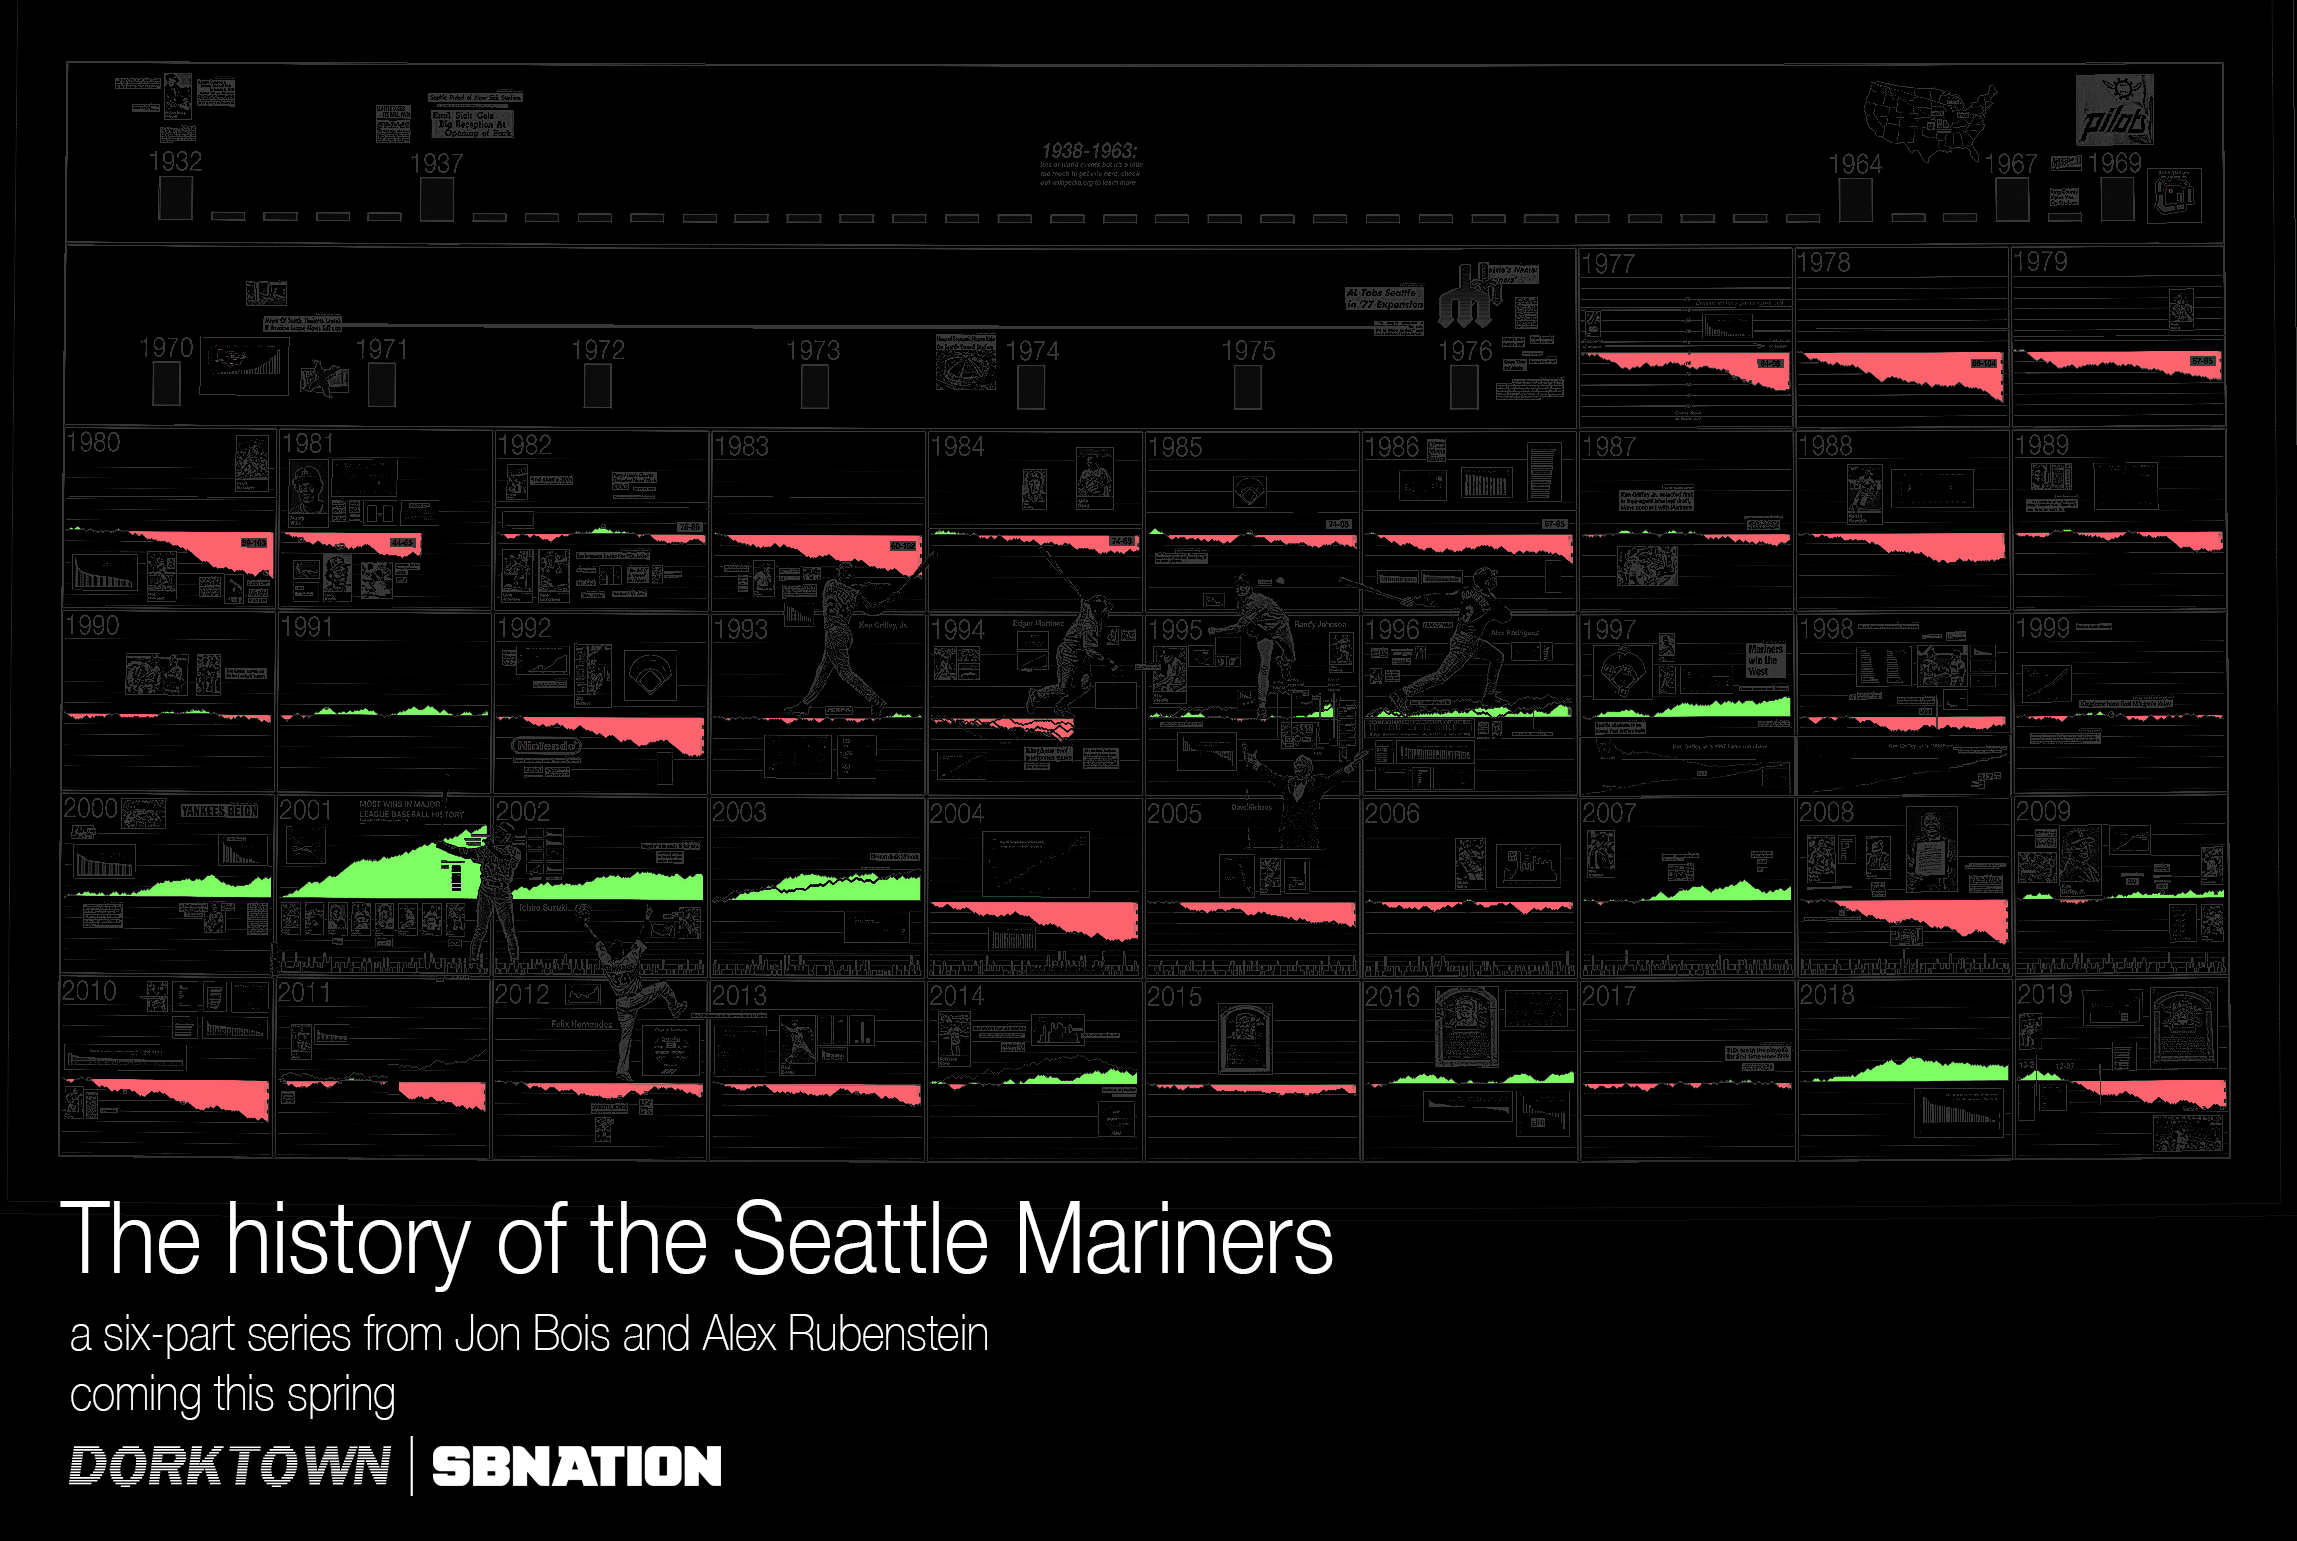 The History of the Seattle Mariners premieres Thursday, March 26th.